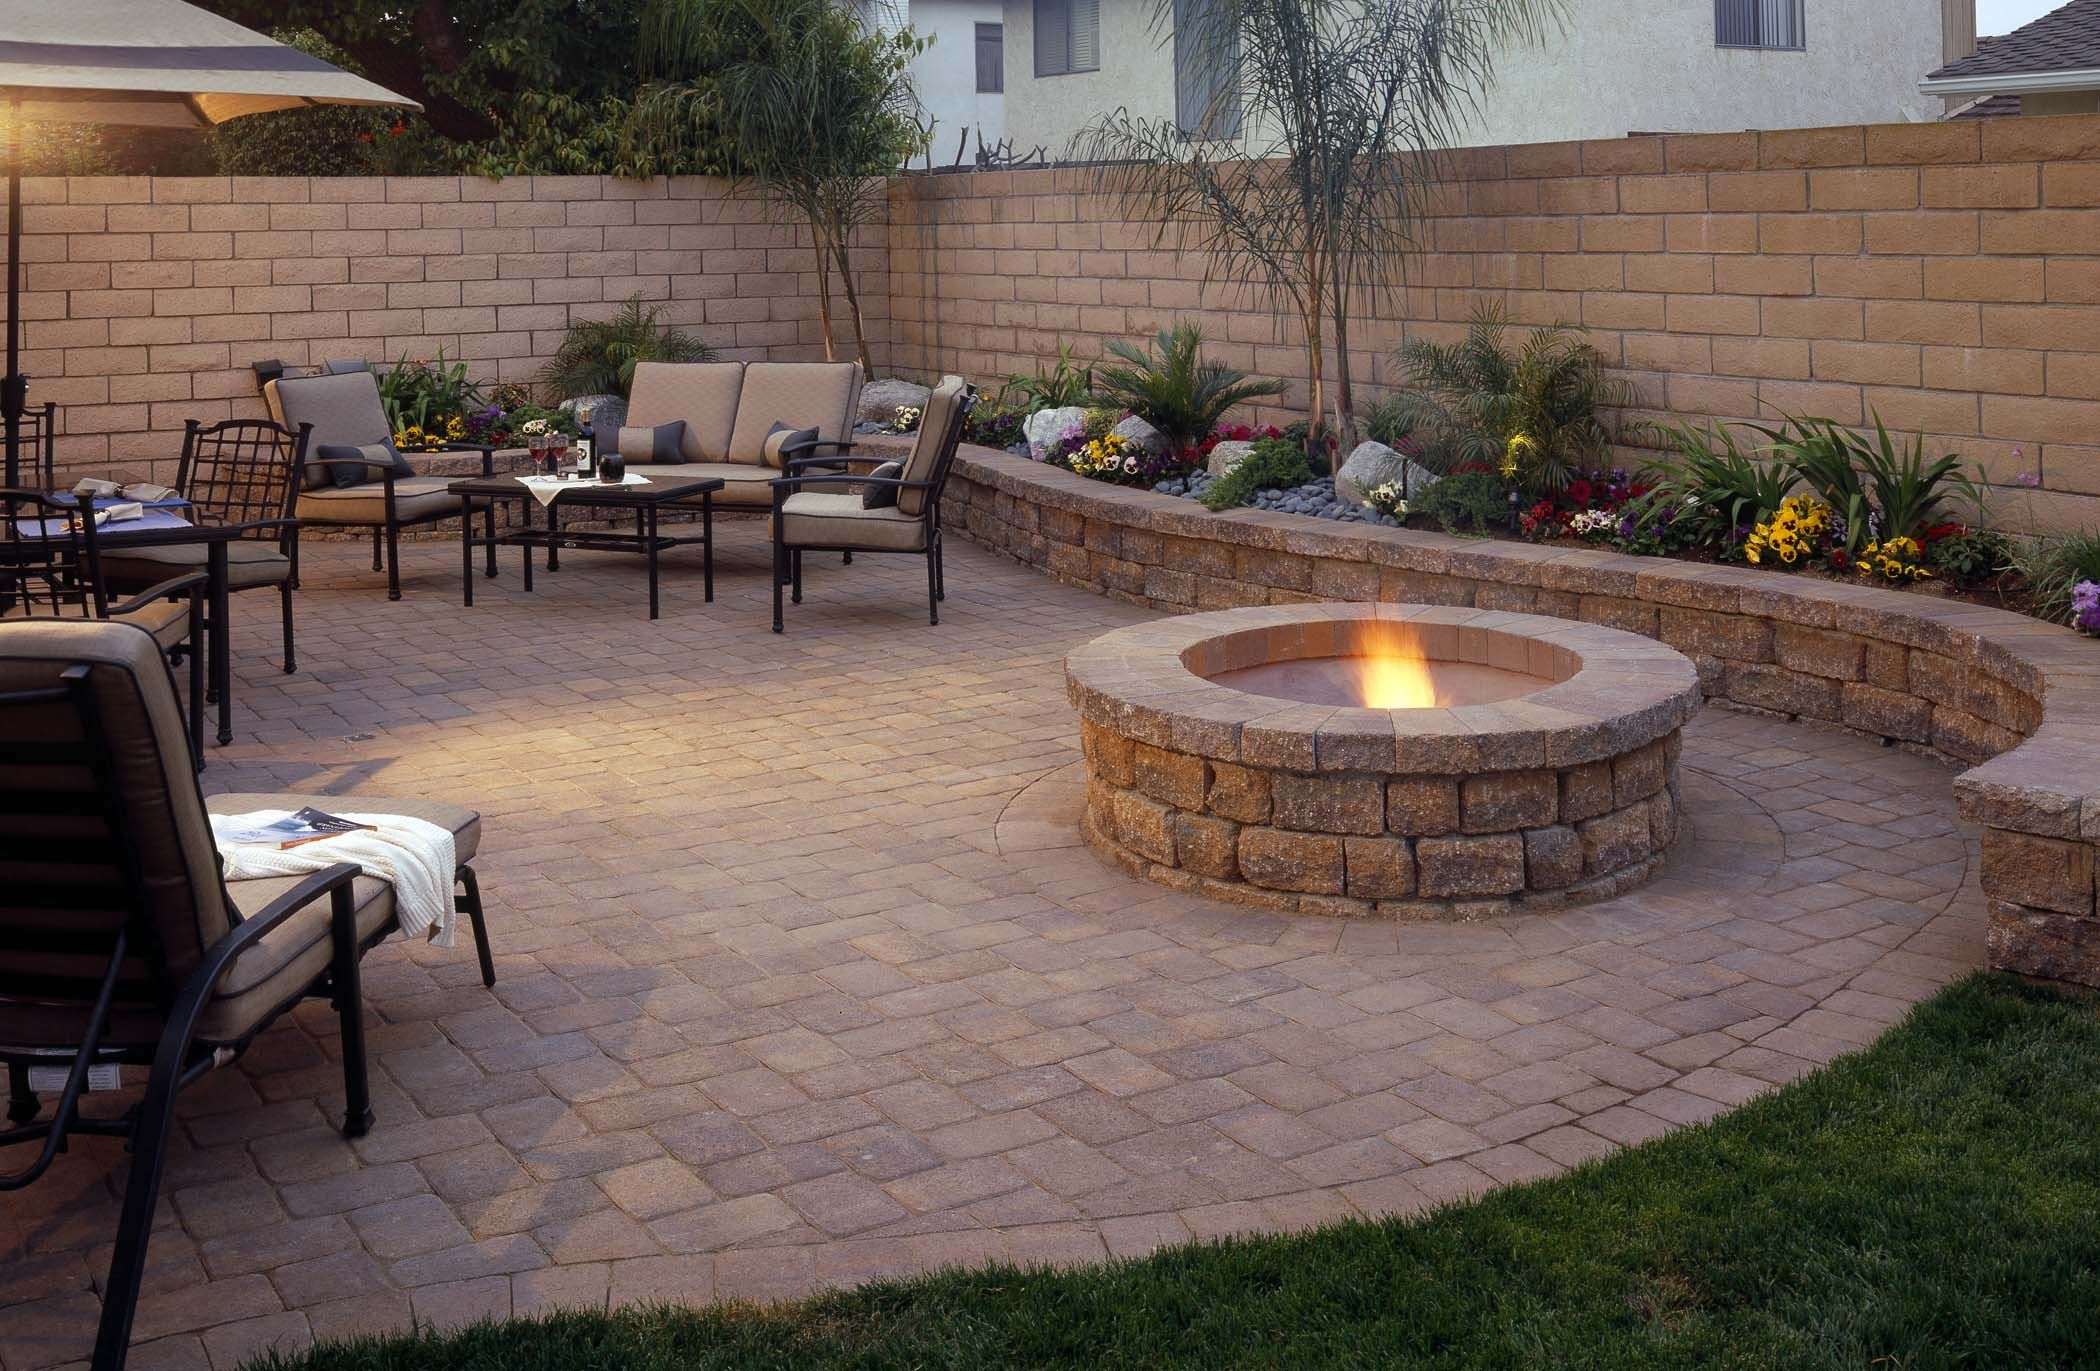 belgard belgard hardscape patio orange county pavers aloha rh pinterest com pavers for backyard ideas pavers for small backyard